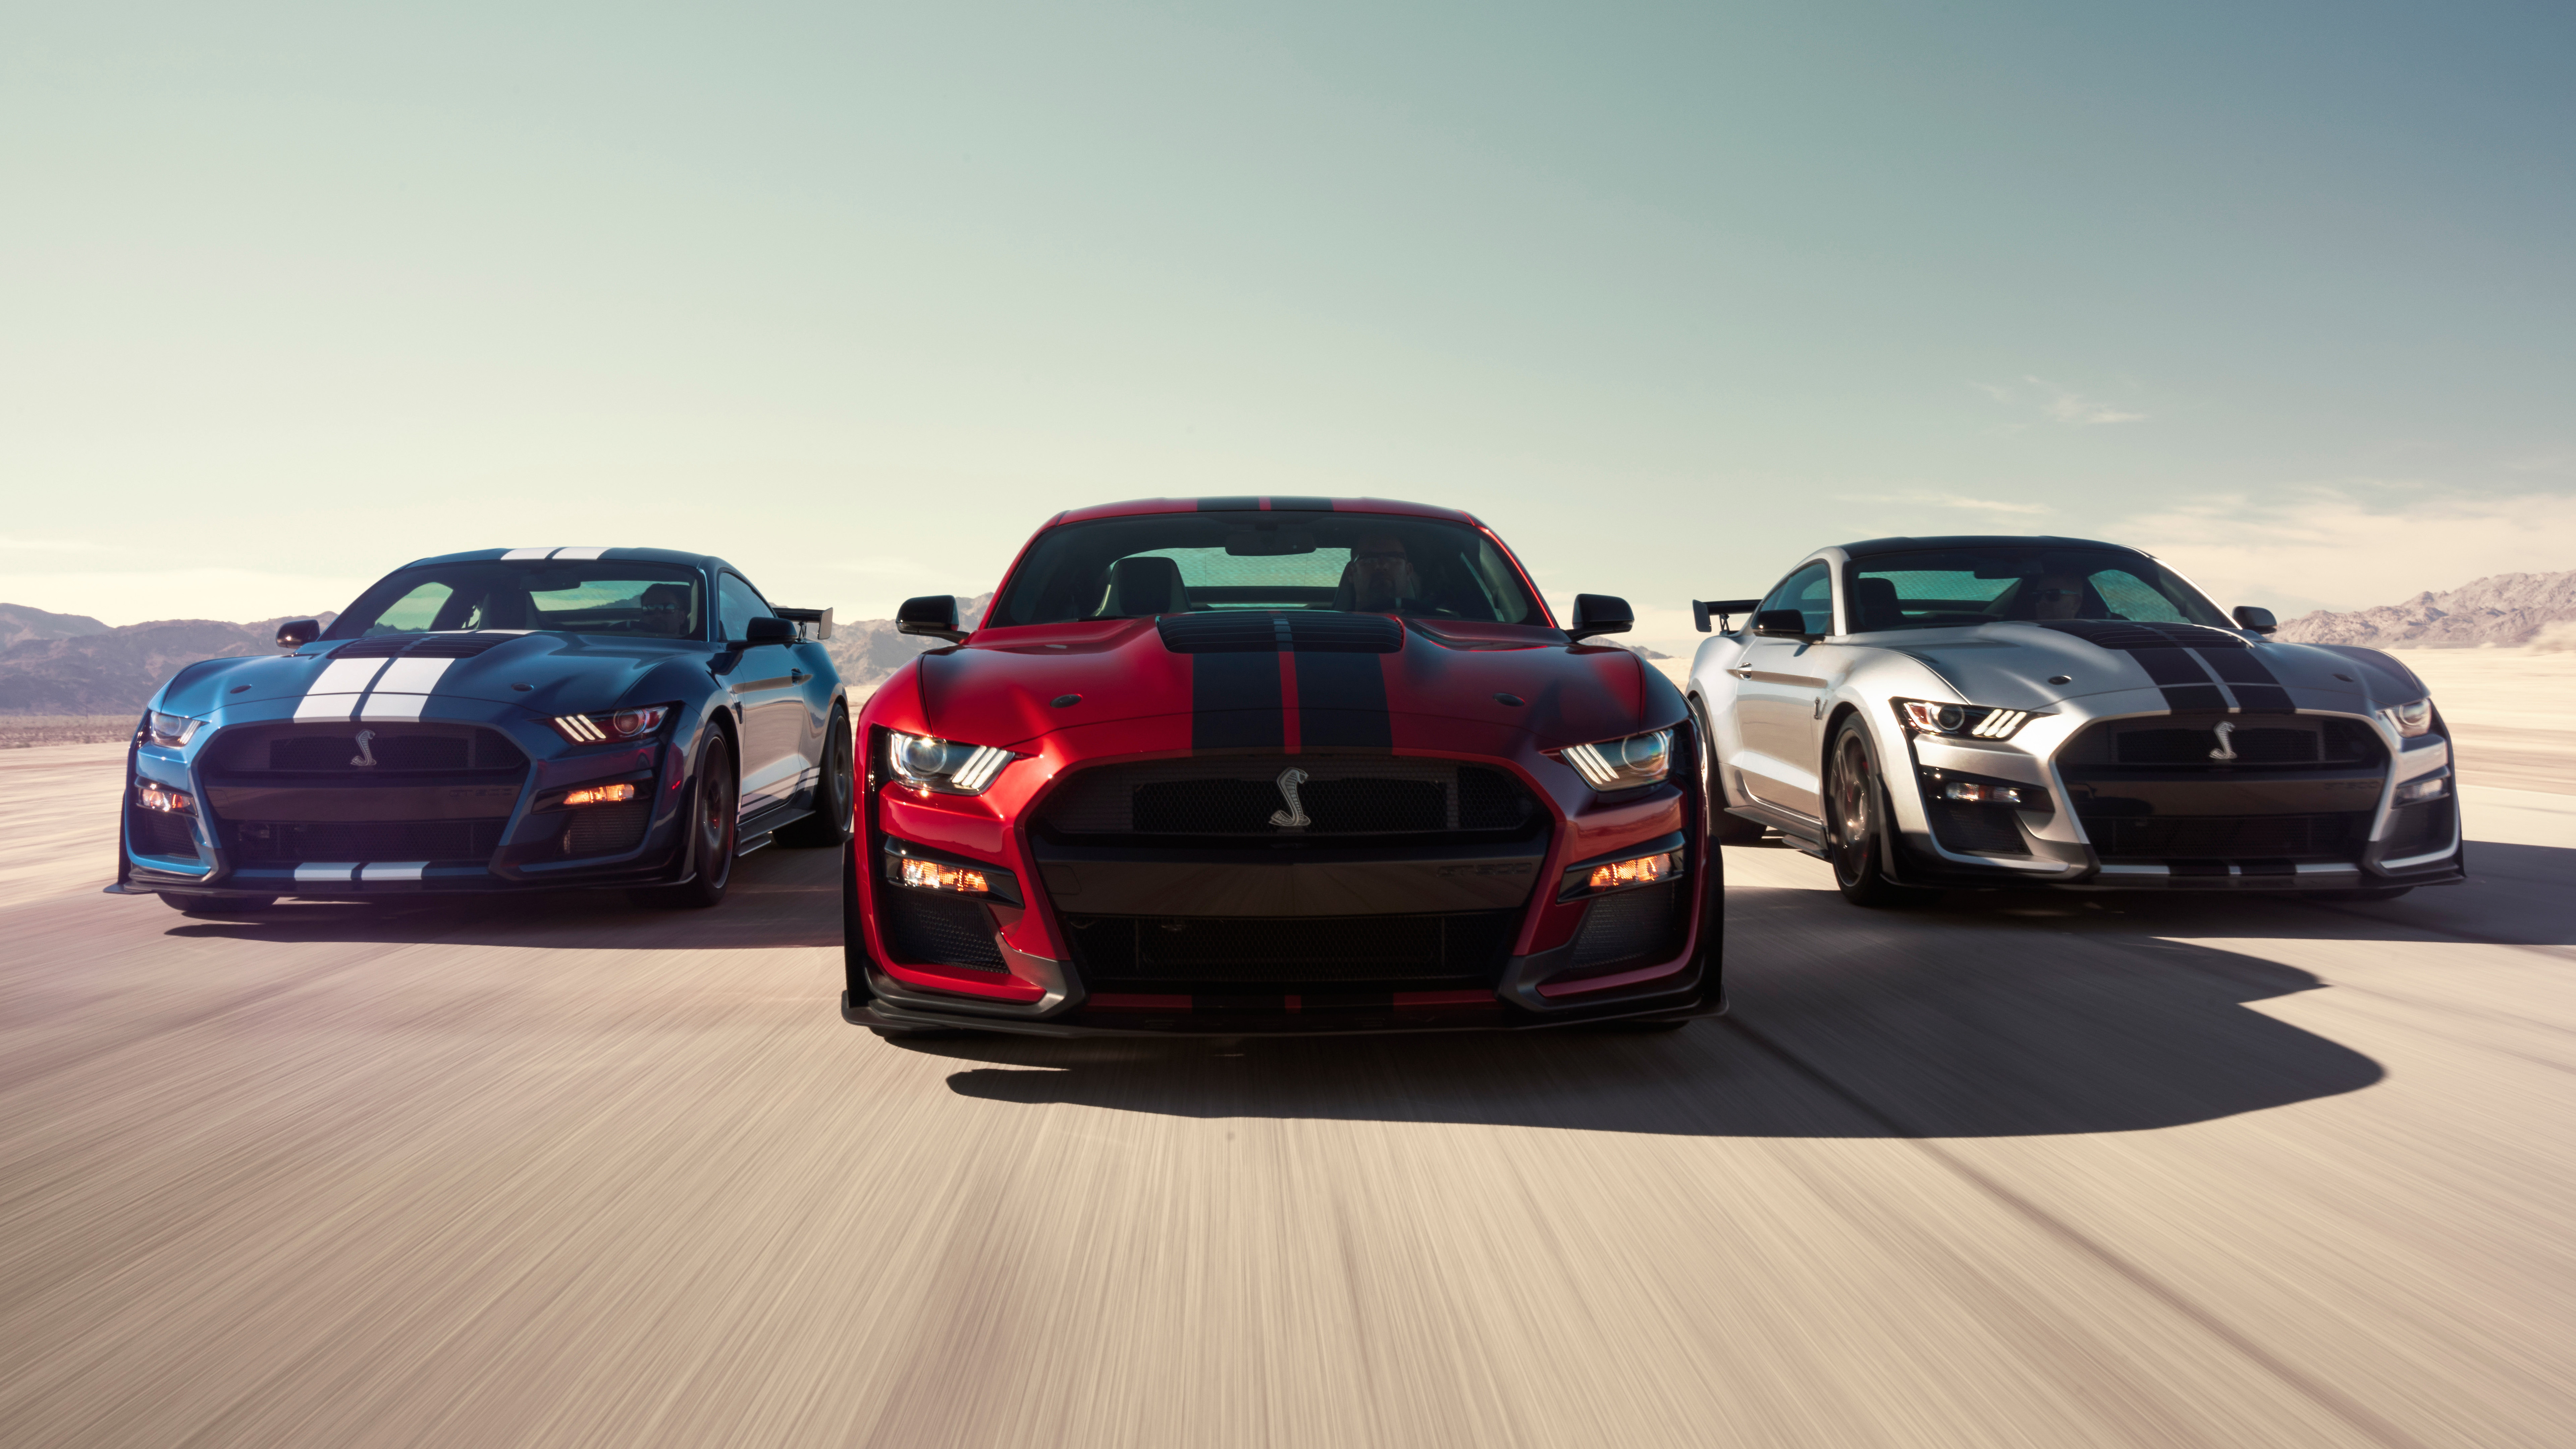 2020-ford-mustang-shelby-gt500-8k-6y.jpg